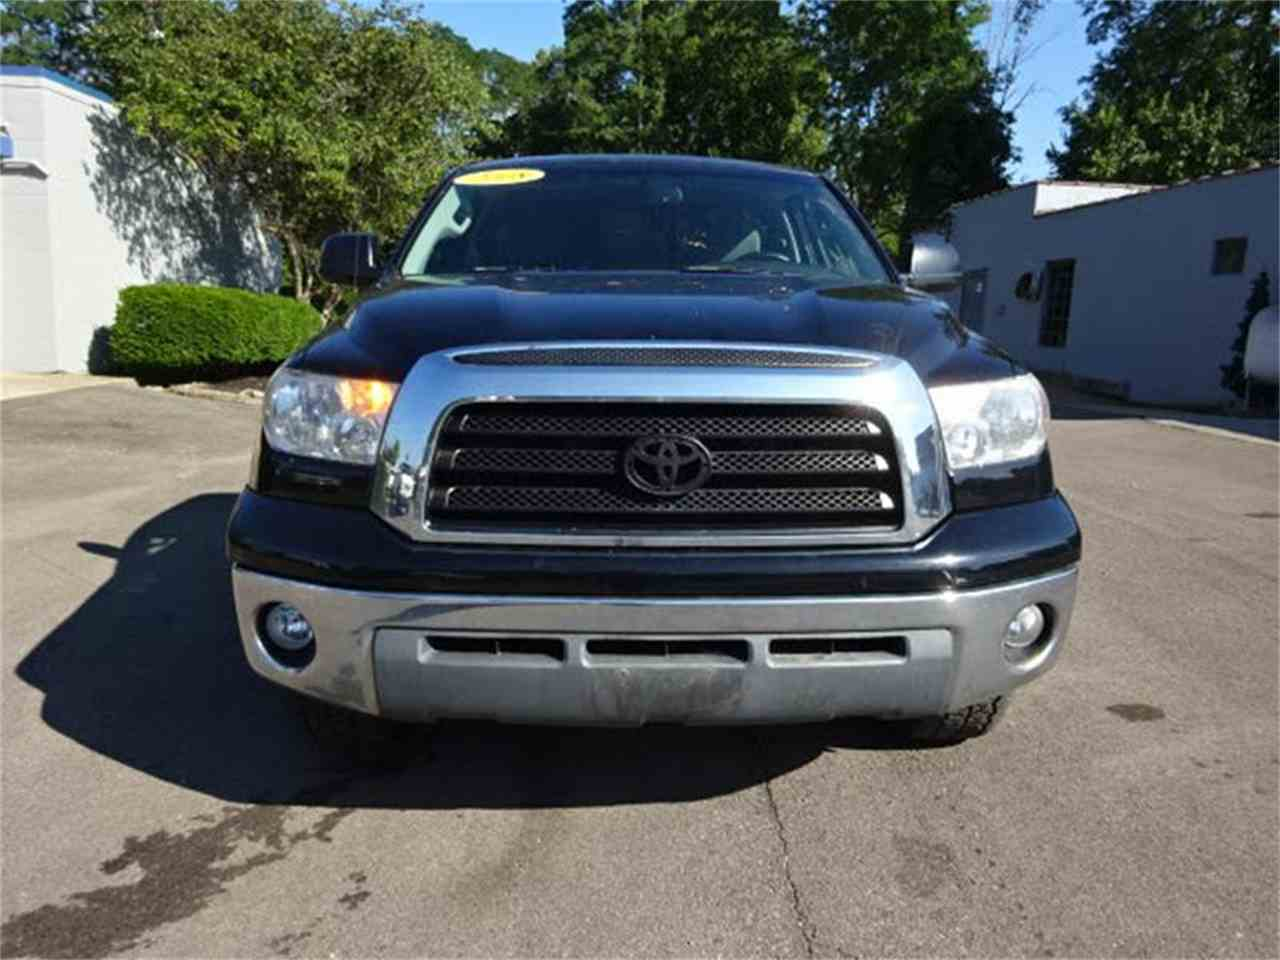 Large Picture of 2008 Toyota Tundra - $11,000.00 Offered by Cincinnati Auto Wholesale - MBKP